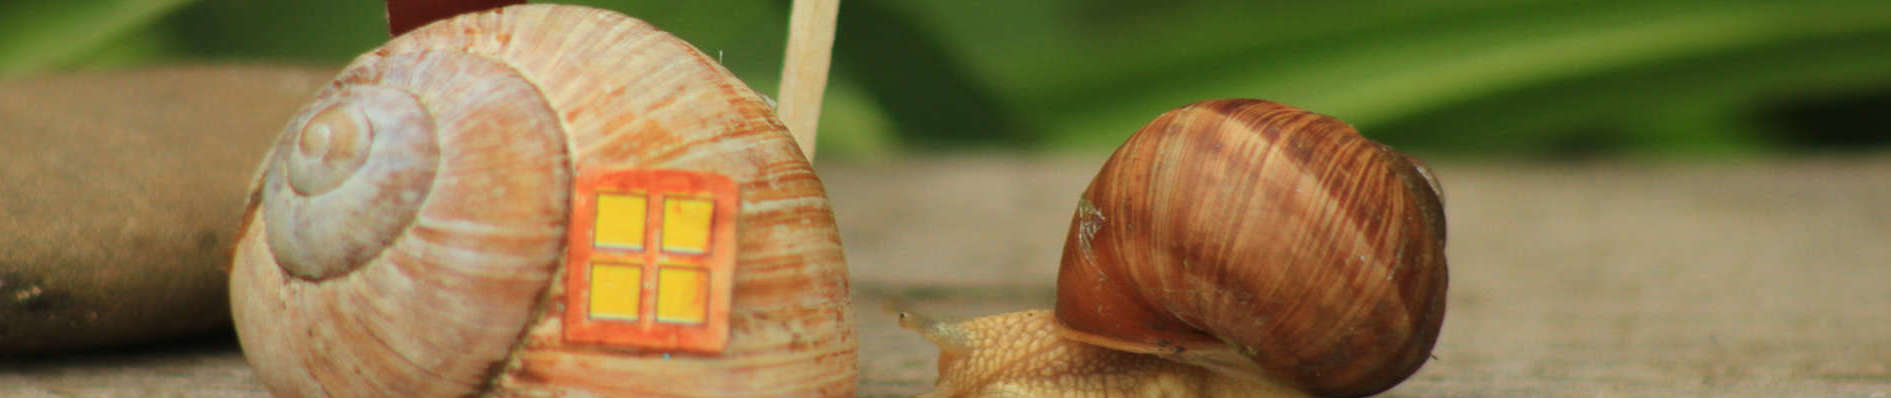 Photo of snails representing shells as homes